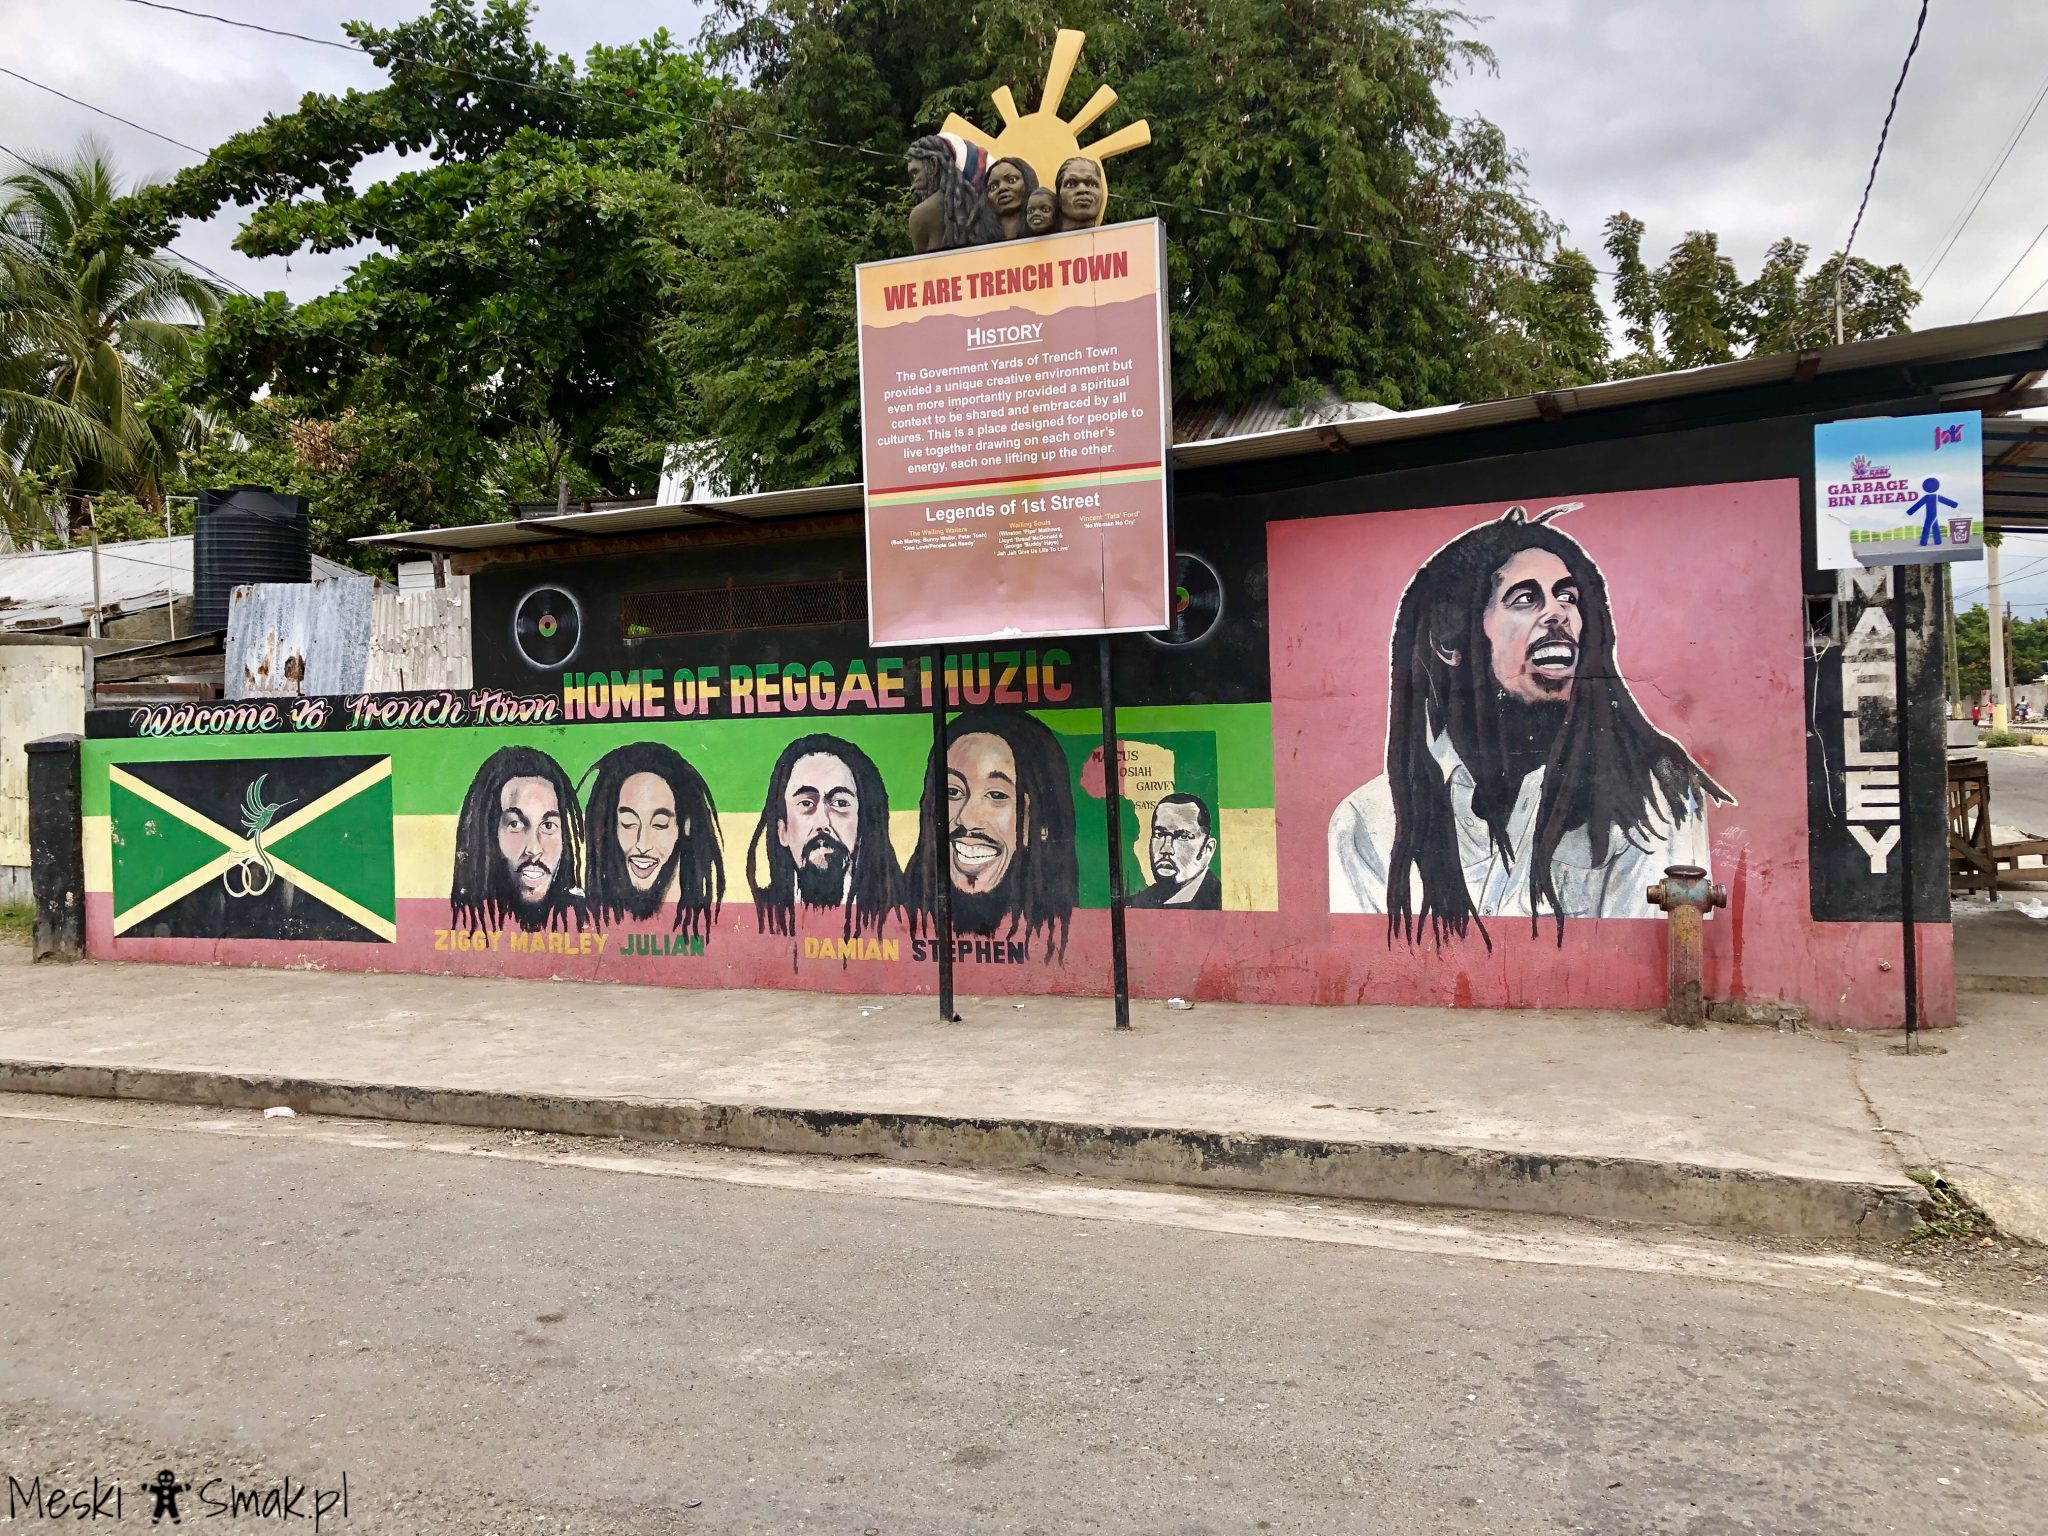 Trenchtown & Trench Town Culture Yard 2